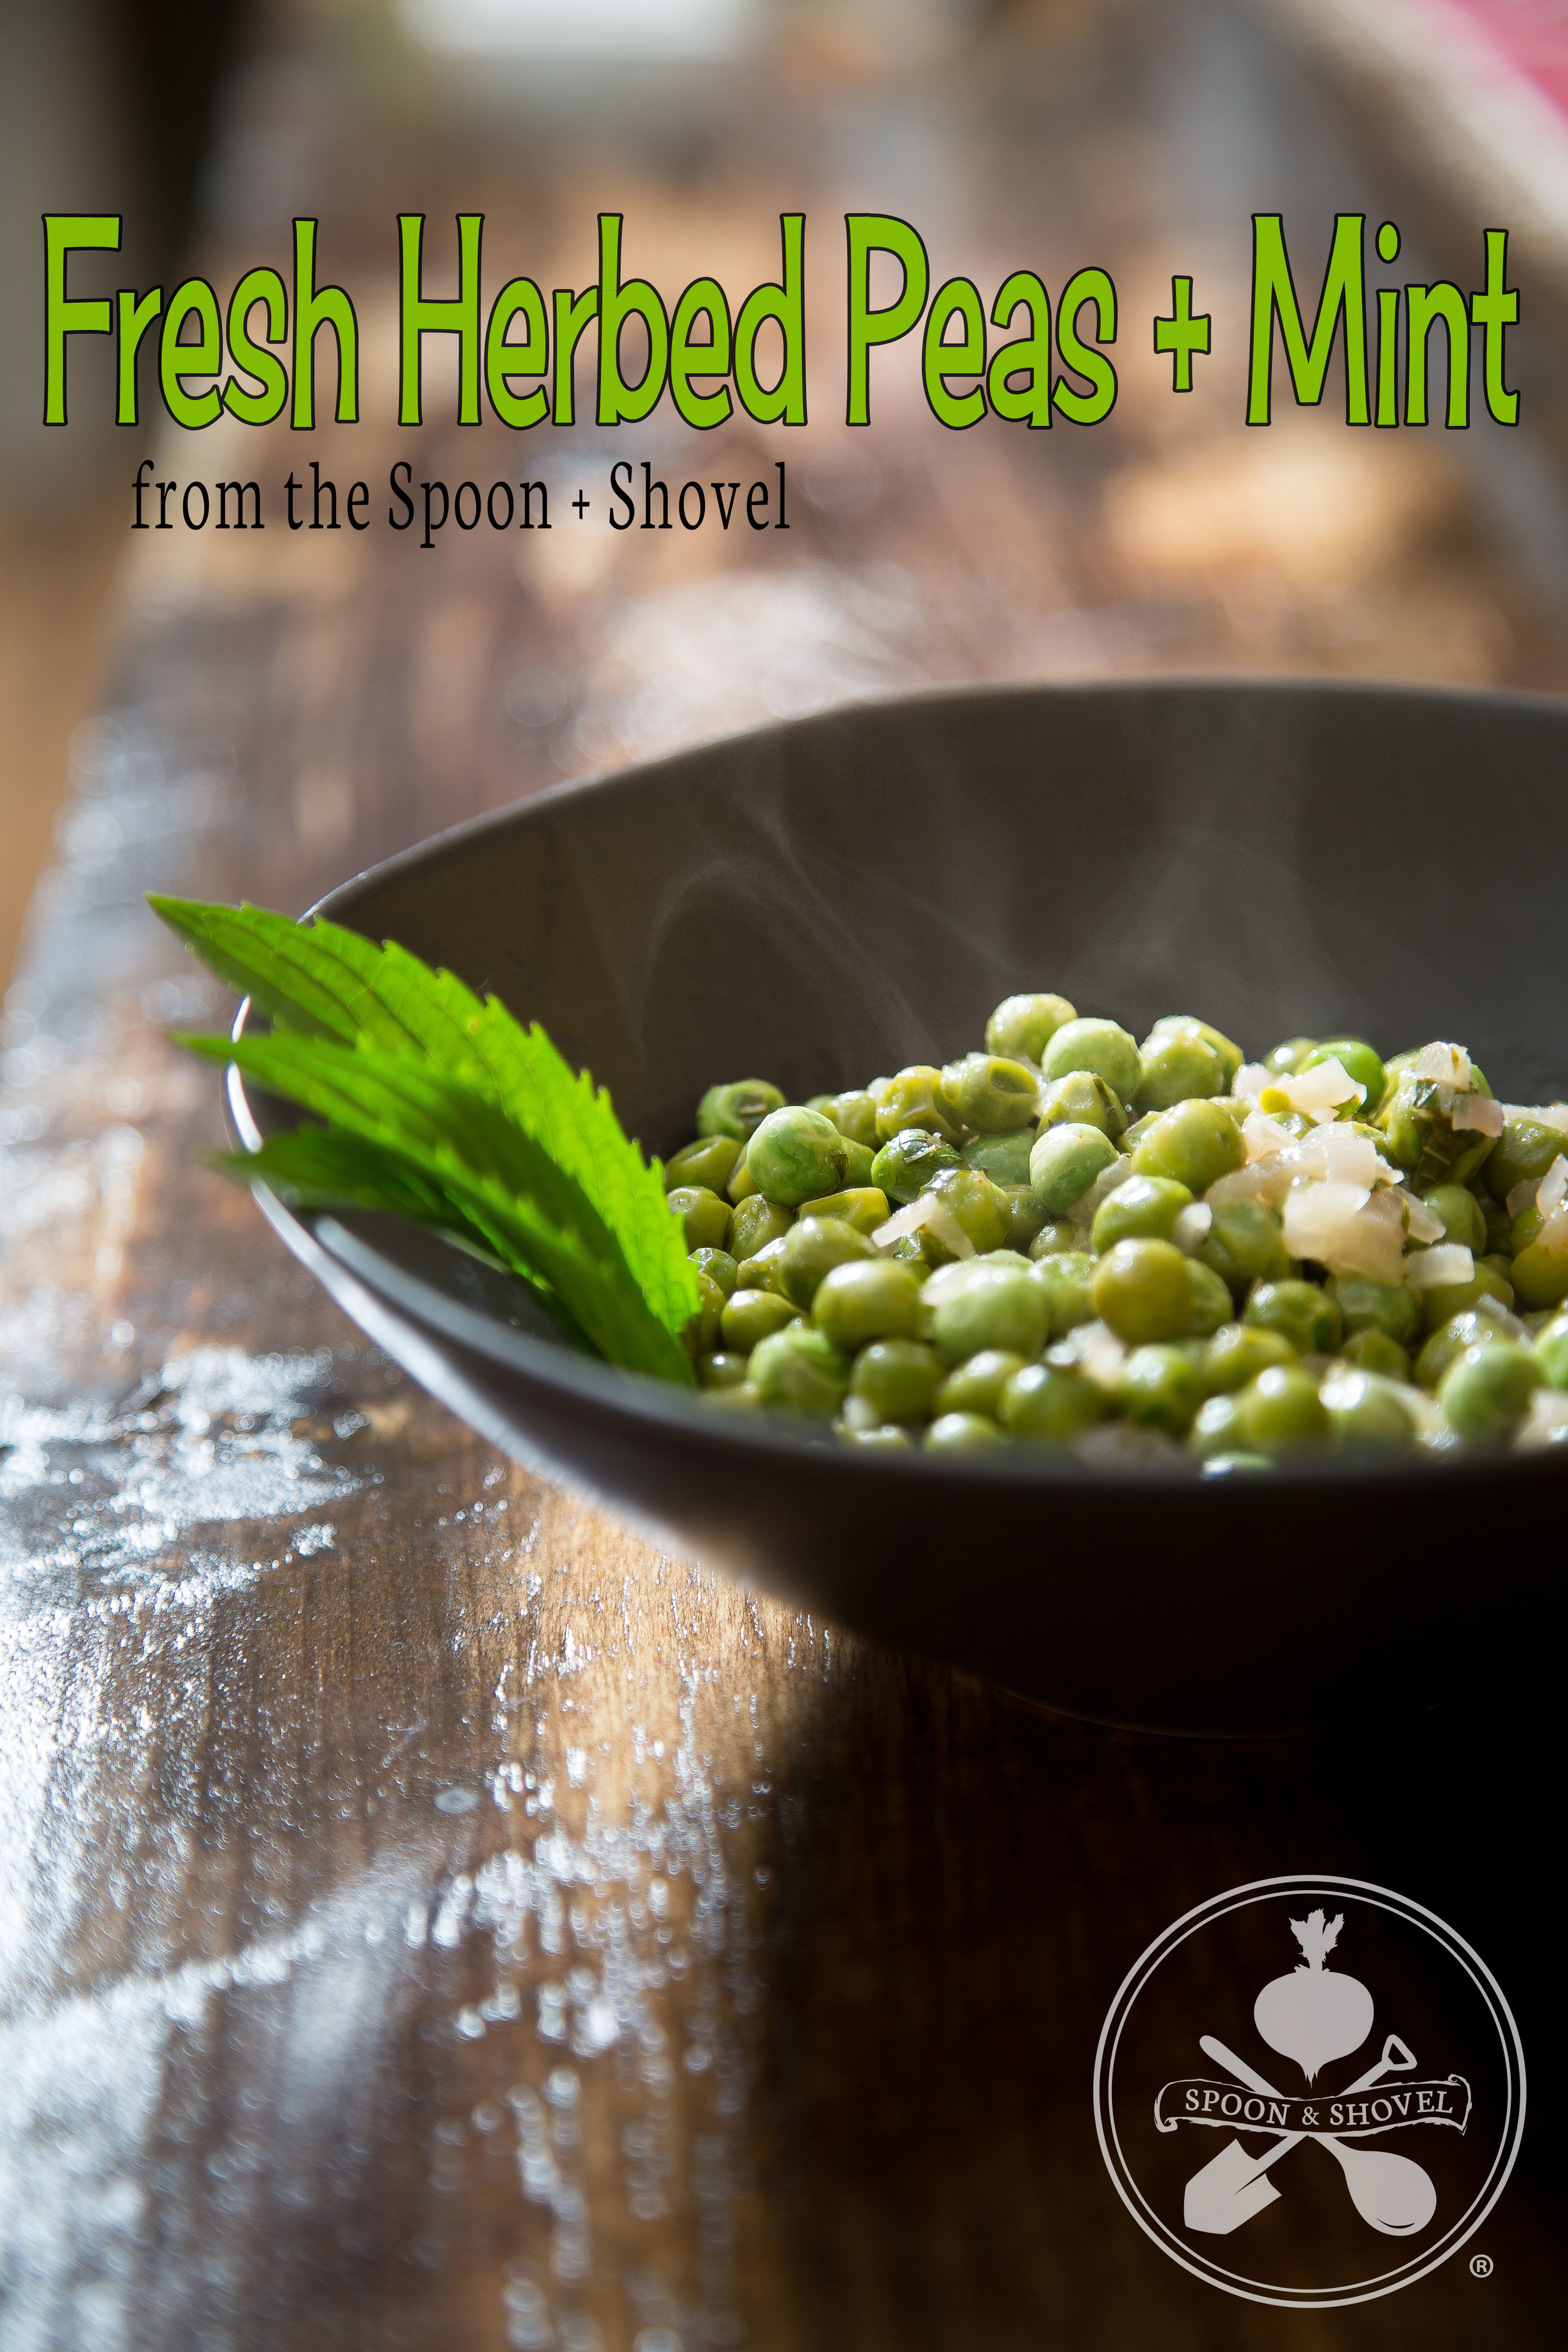 Fresh herbed peas with shallots and white wine from The Spoon + Shovel